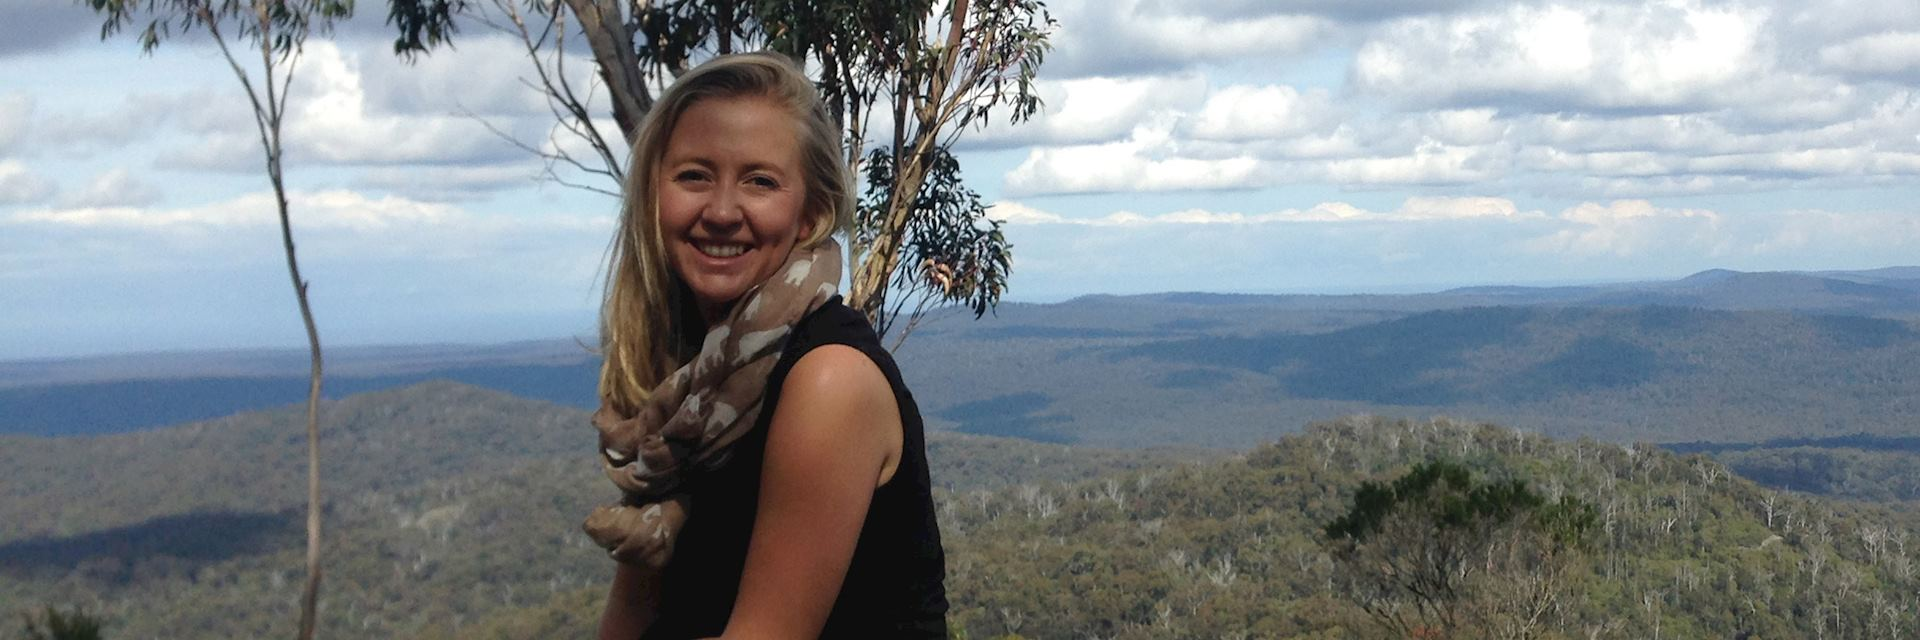 Alice at Genoa Peak in Croajingolong National Park, Australia